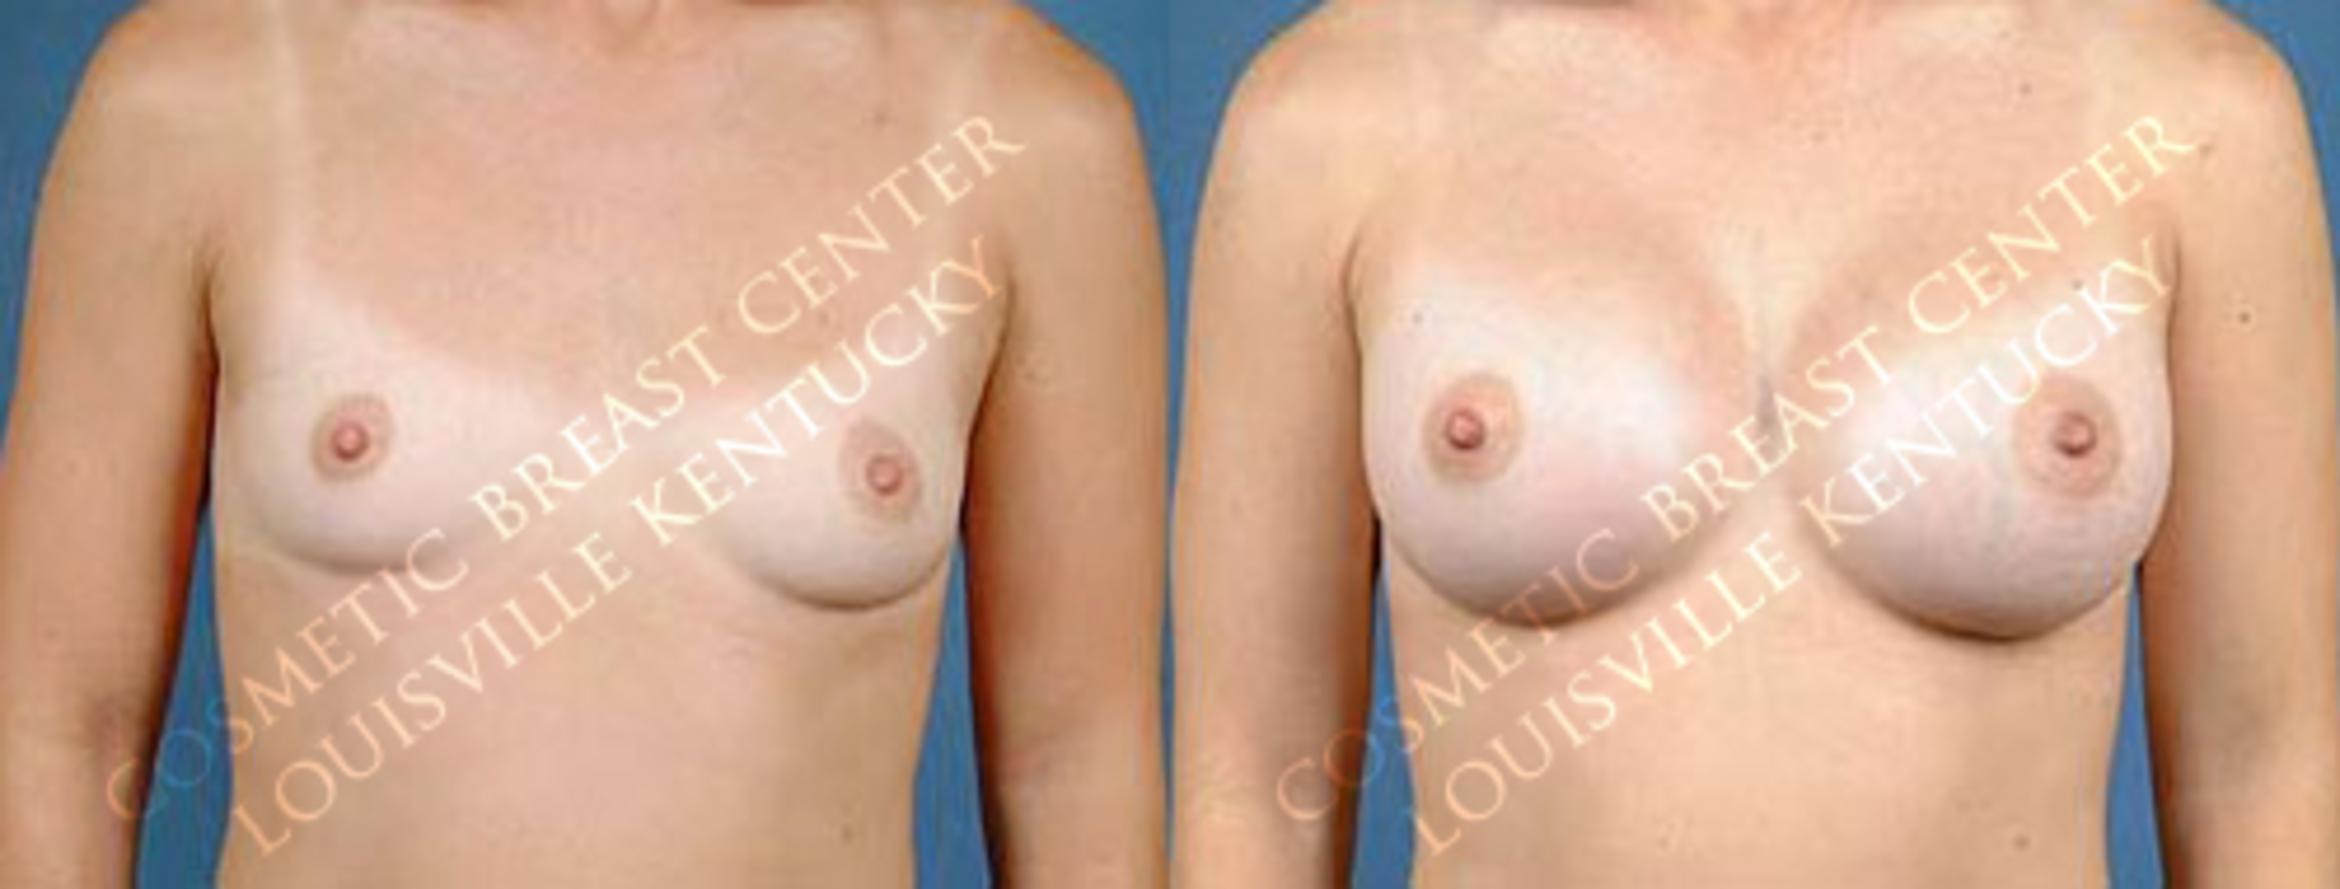 Enlargement - Saline Case 3 Before & After View #1 | Louisville & Lexington, KY | CaloAesthetics® Plastic Surgery Center